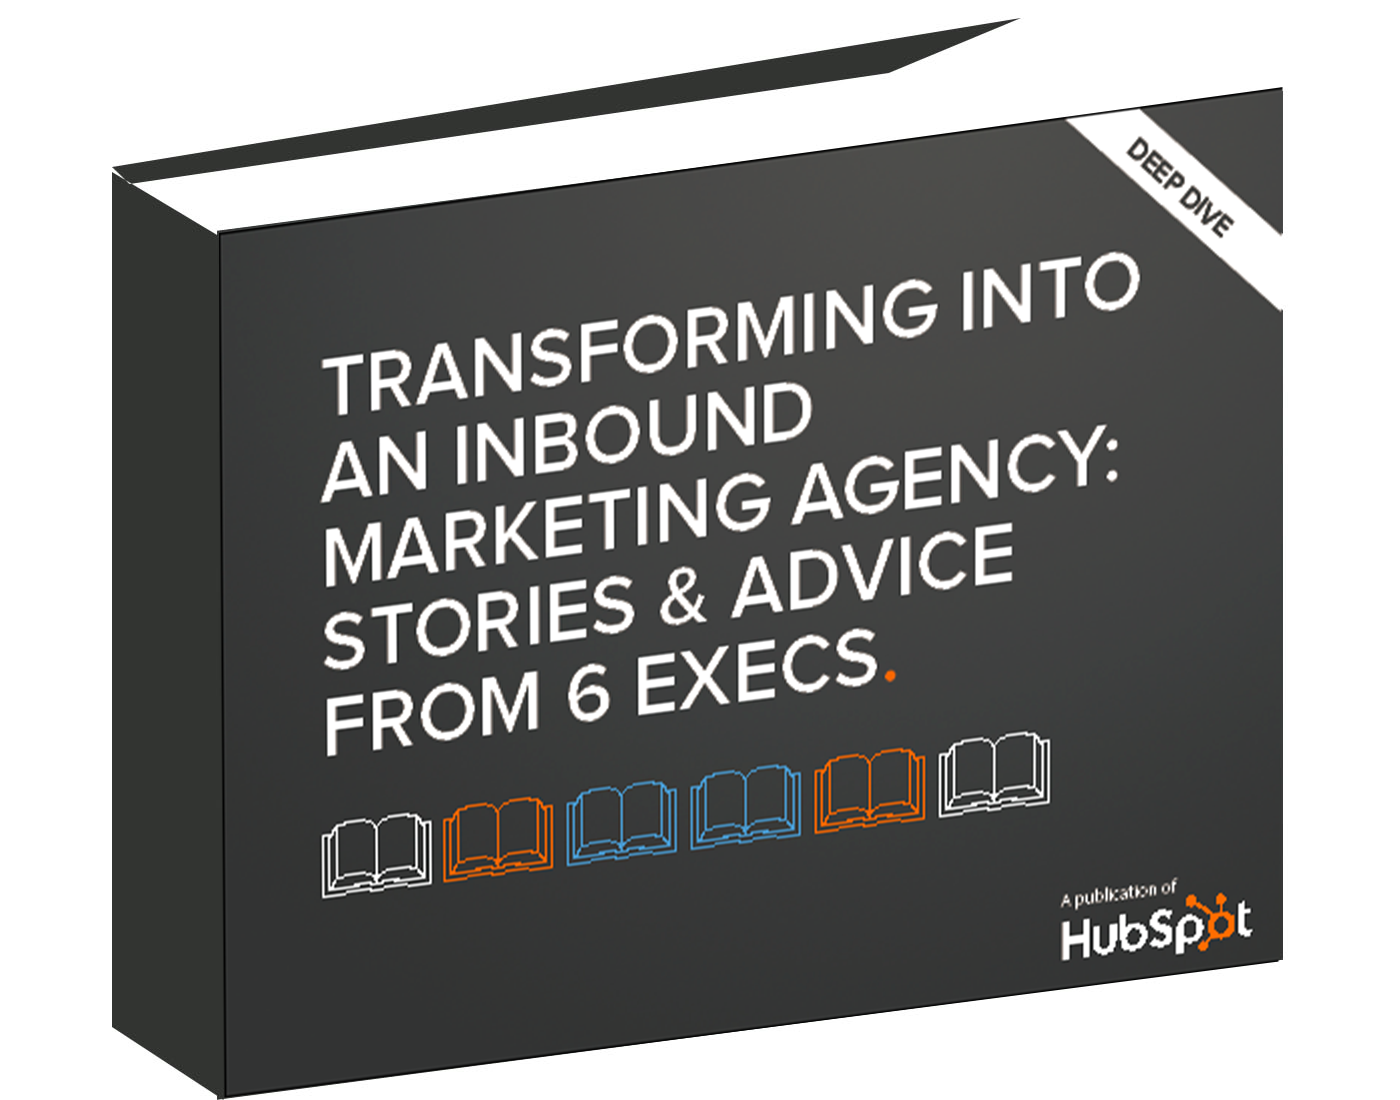 transforming_into_an_inbound_marketing_agency_stories_advice_from_6_execs_ebook_cover